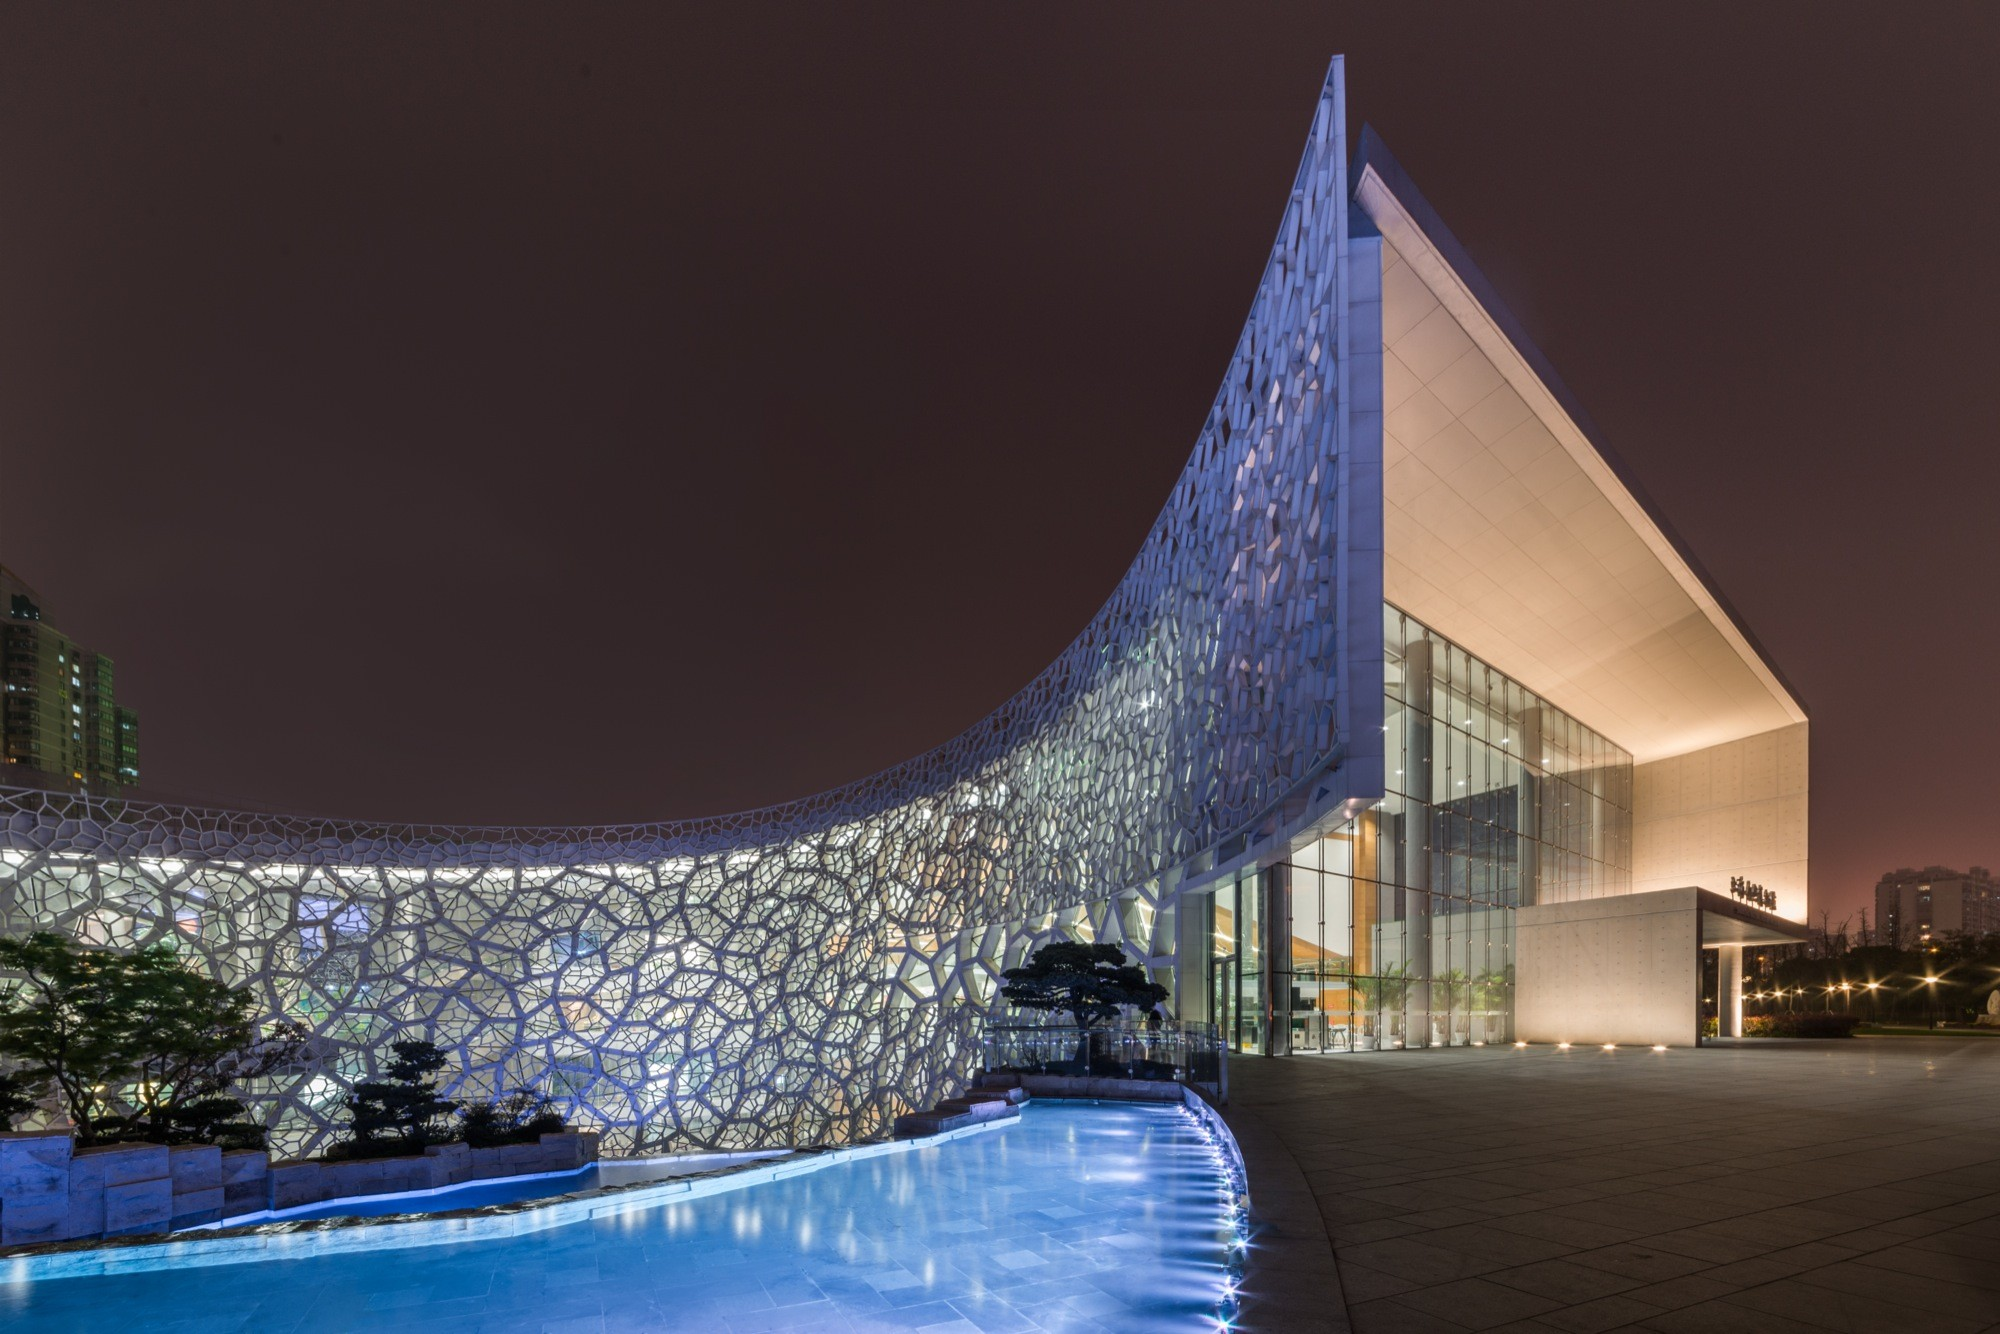 Shanghai Natural History Museum Address